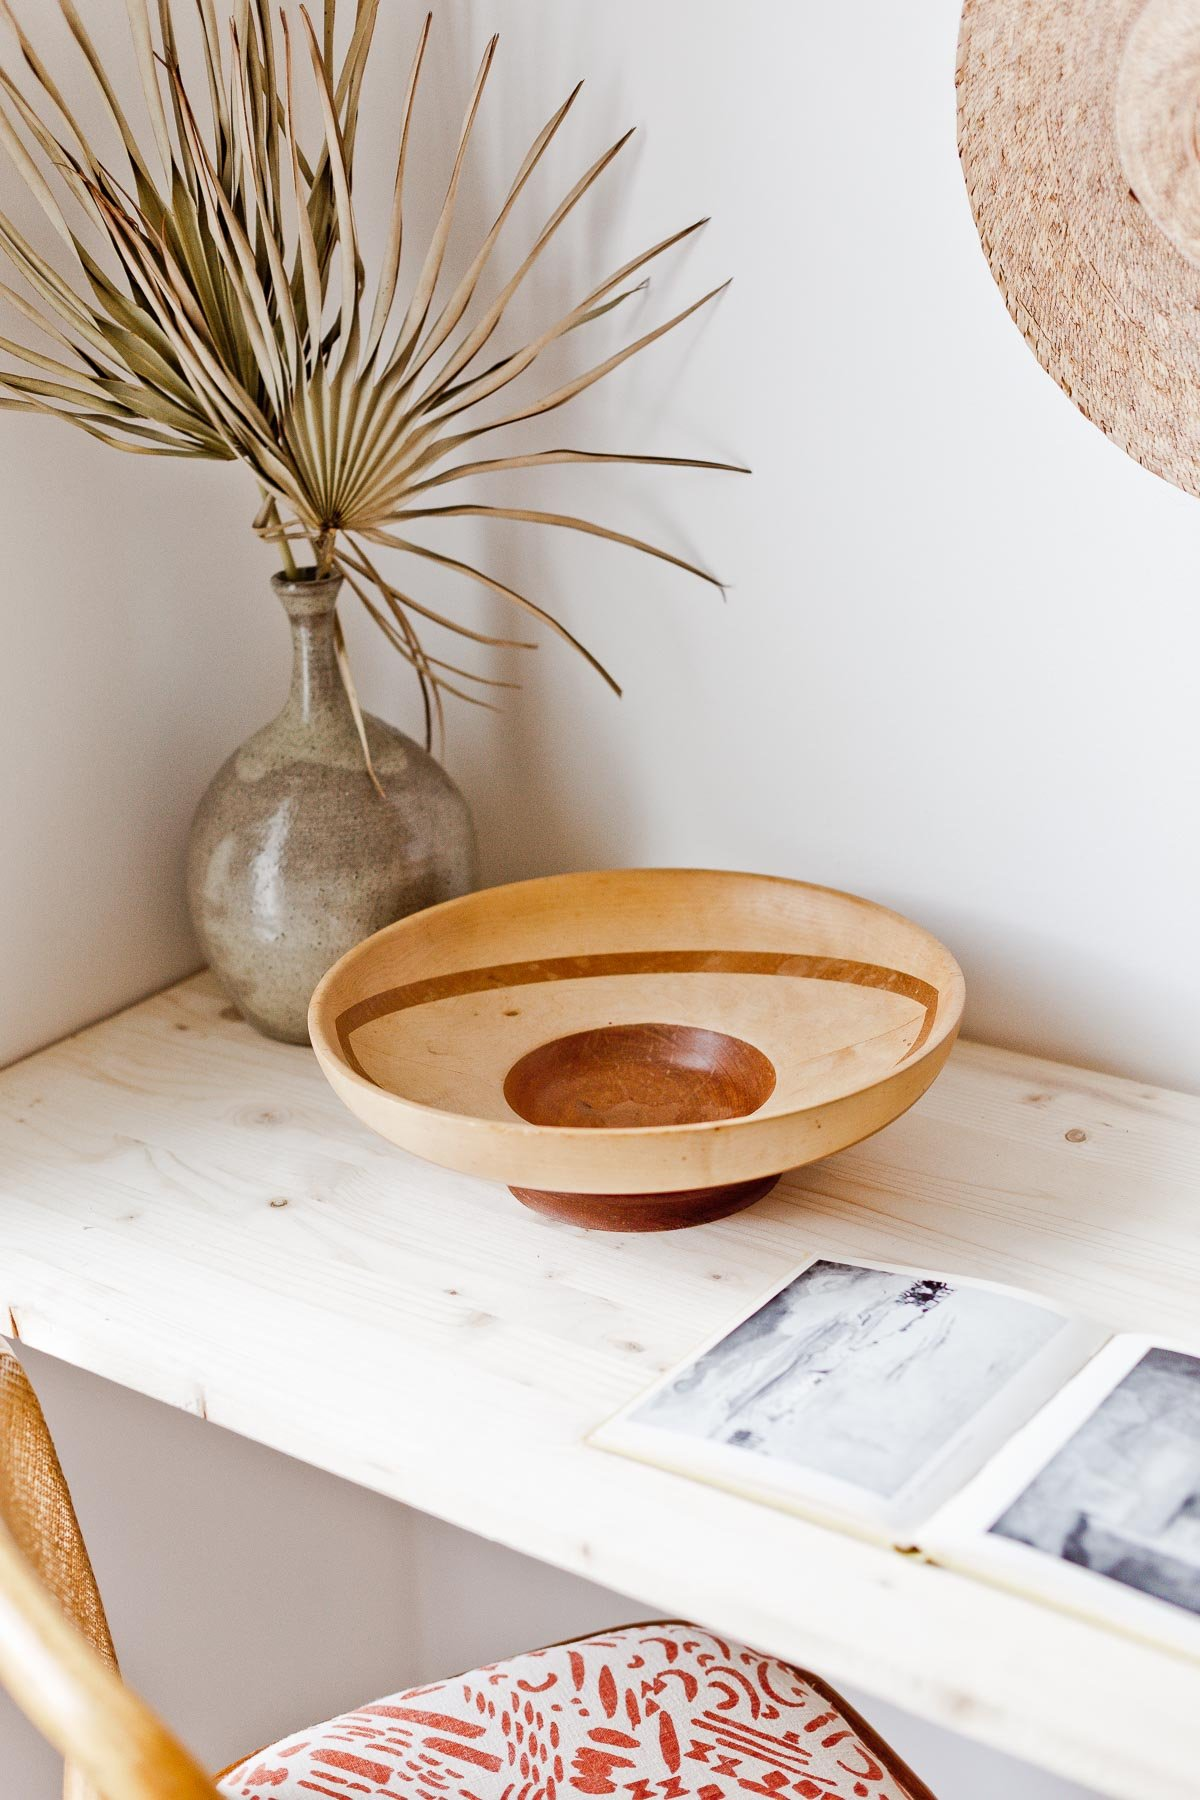 Vintage finds and natural elements are found throughout this earthy modern guest room / home office makeover by Brittni Mehlhoff of Paper and Stitch. #earthyinterior #organicmodern #vintage #deskaccessories